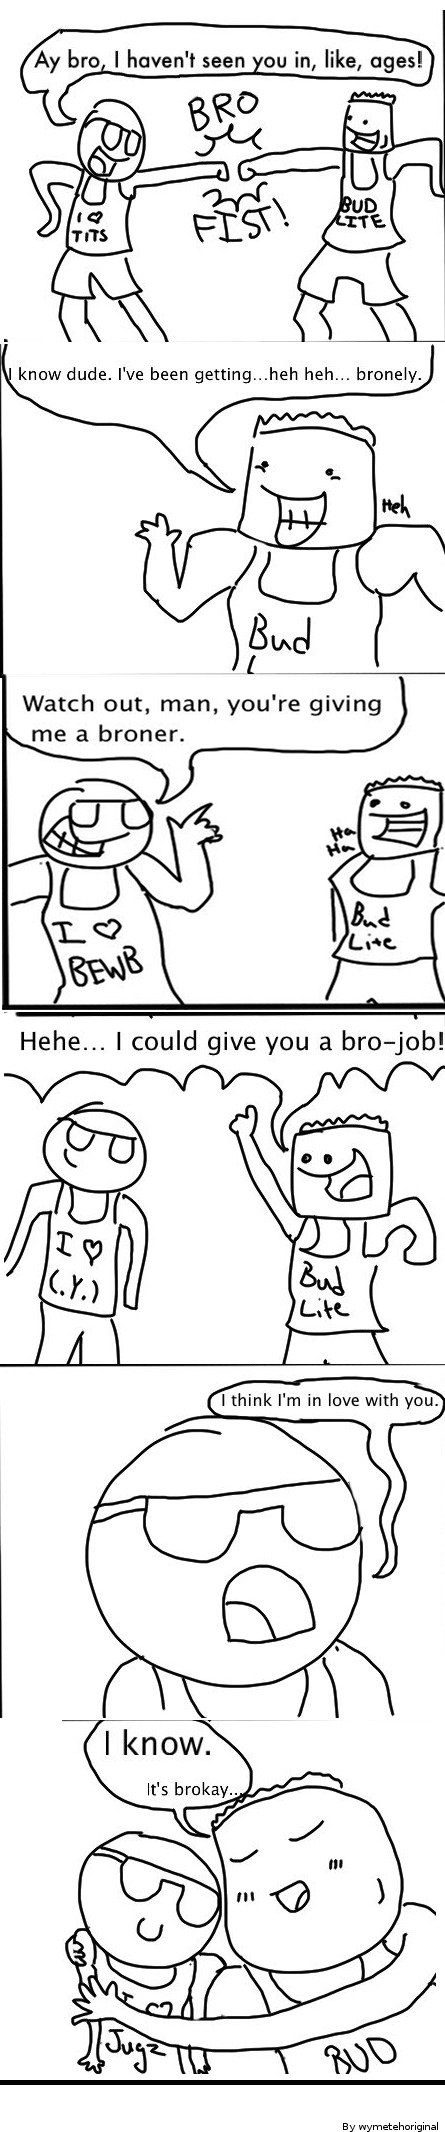 Bros. Rad Bromance?. he I haven' t seen nu in, like, ages.', know dude. We been getting... heh heh... broneys, Bud Watch out, man, yeu' re giving me a broner. H